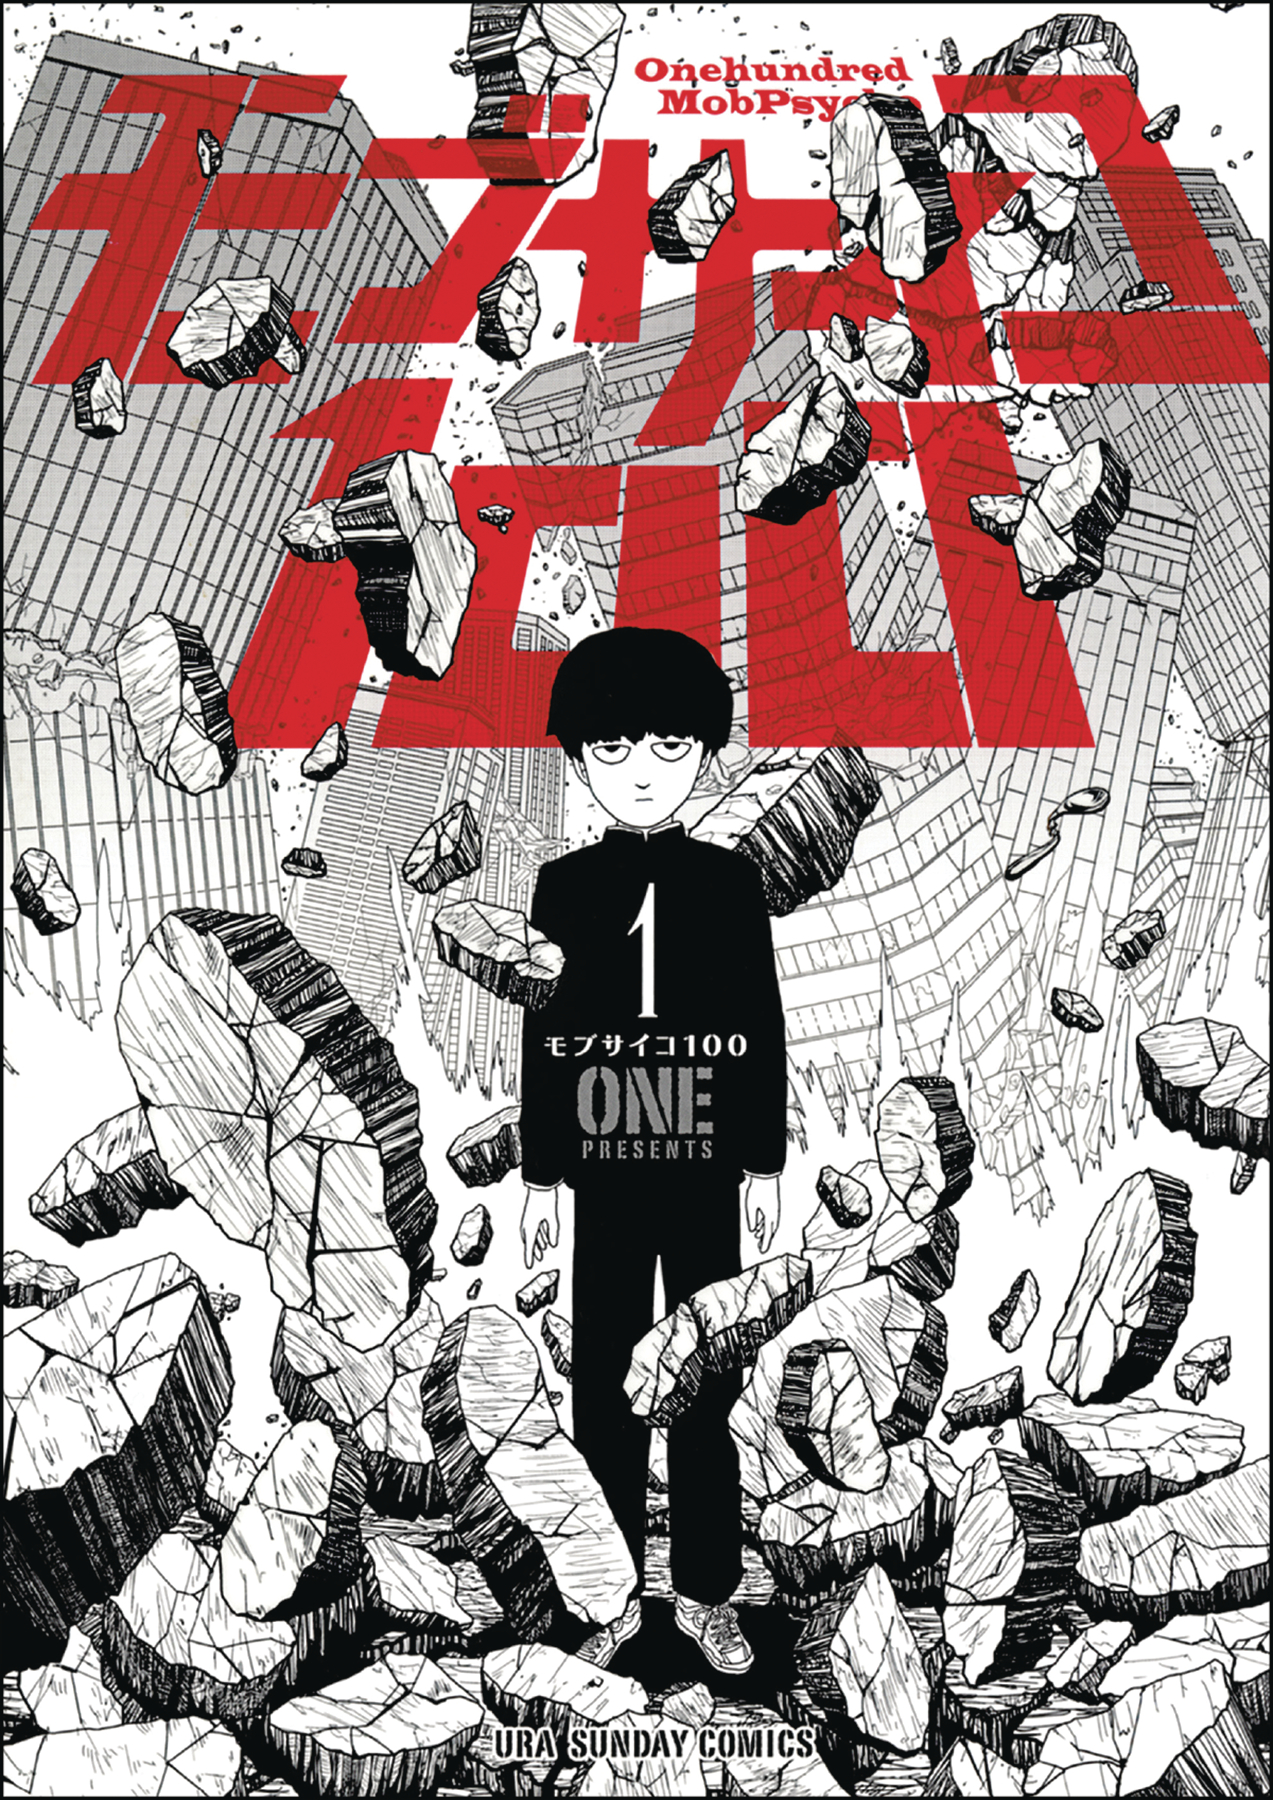 MOB PSYCHO 100 TP VOL 01 (JUN180383)